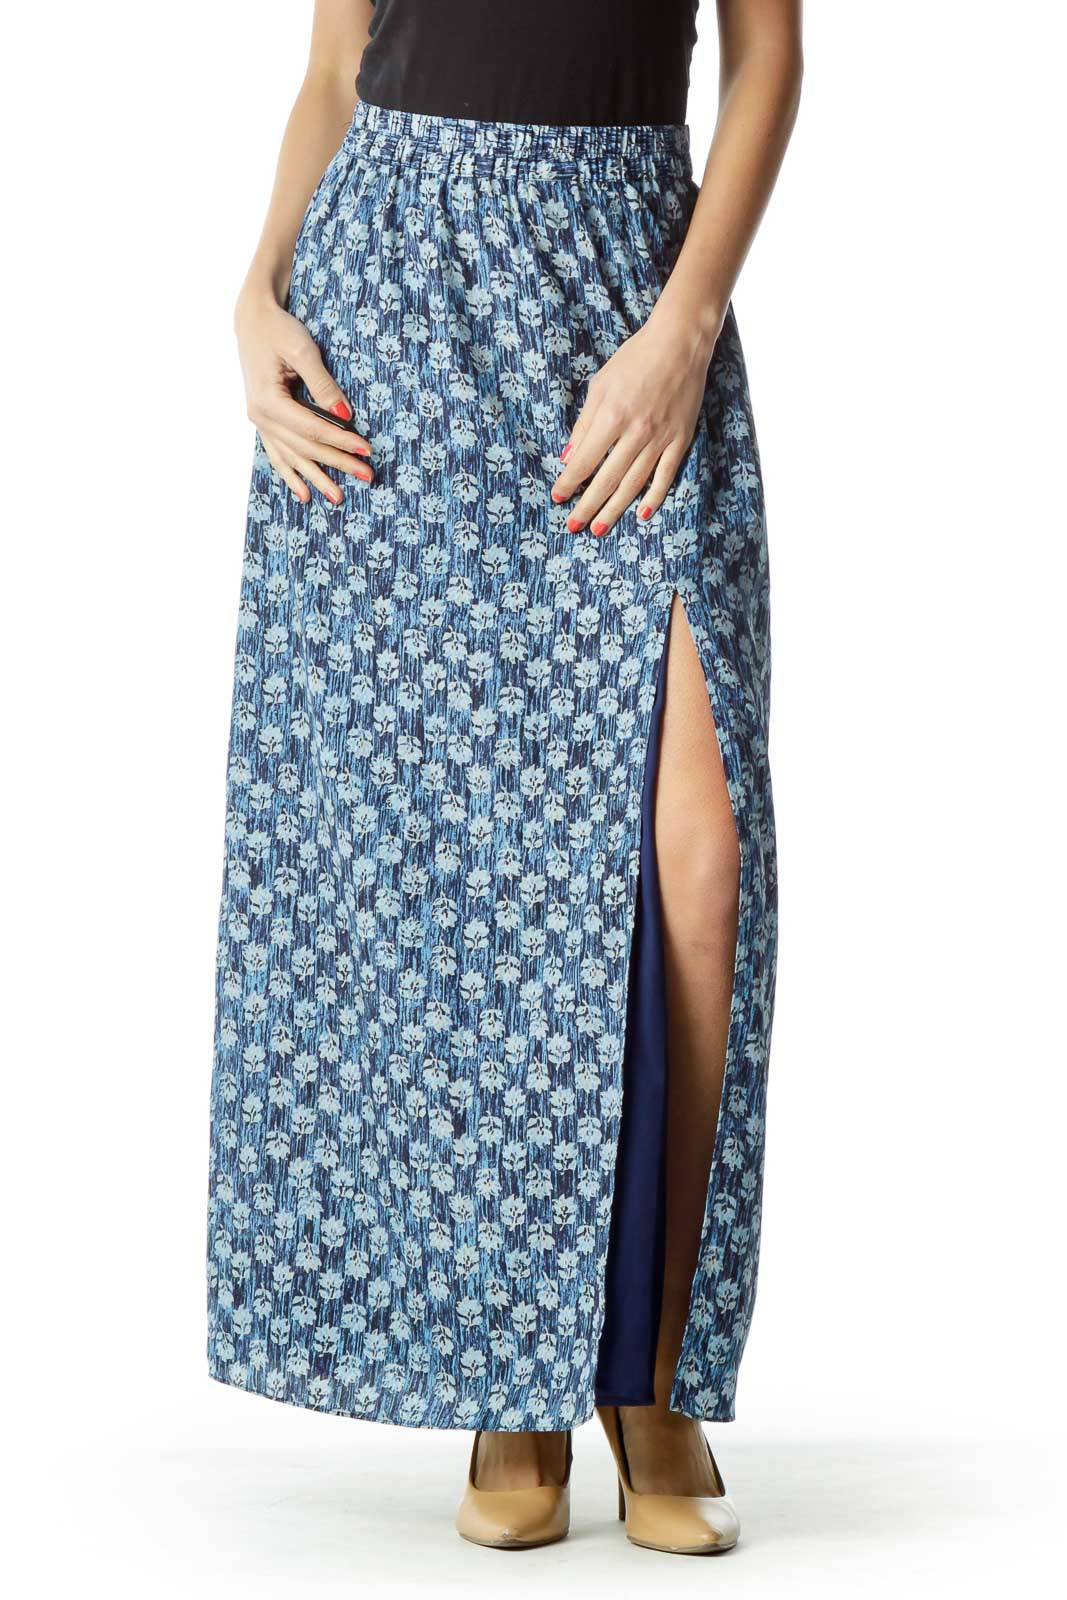 Blue Floral Print Maxi Skirt with Slit Front